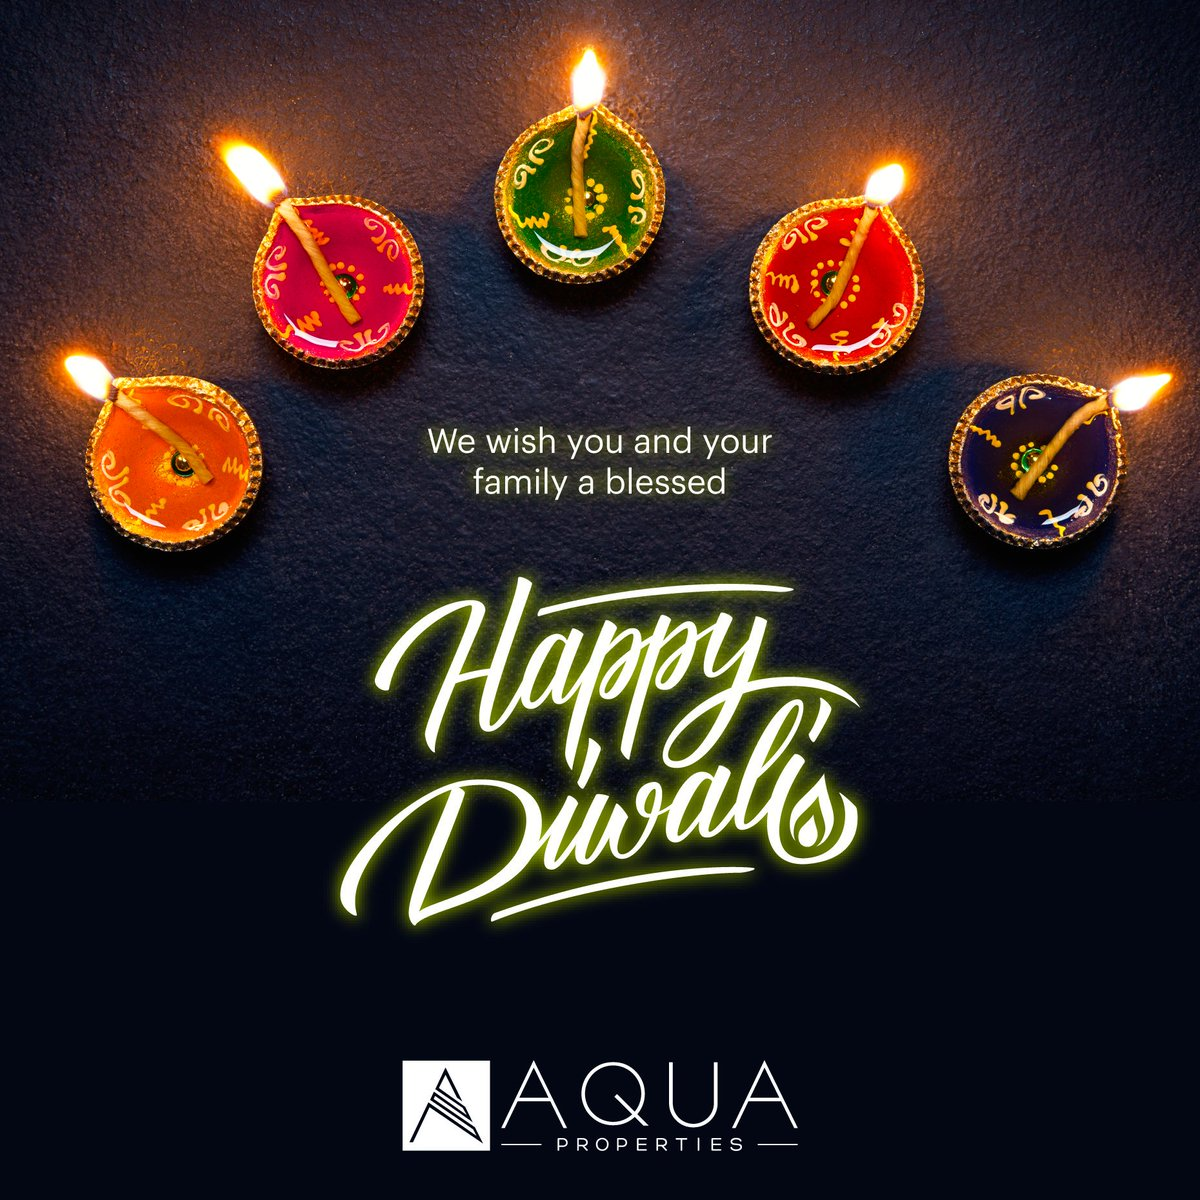 From all of us at AQUA Properties, on the occasion of Diwali, we wish you happiness, health, success and a prosperous New Year to everyone celebrating.  #AQUAProperties #RealEstate #DubaiRealEstate #Diwali #HappyDiwali #Diwali2019 #MyDubai #UAE https://t.co/Srk7gD8y7w